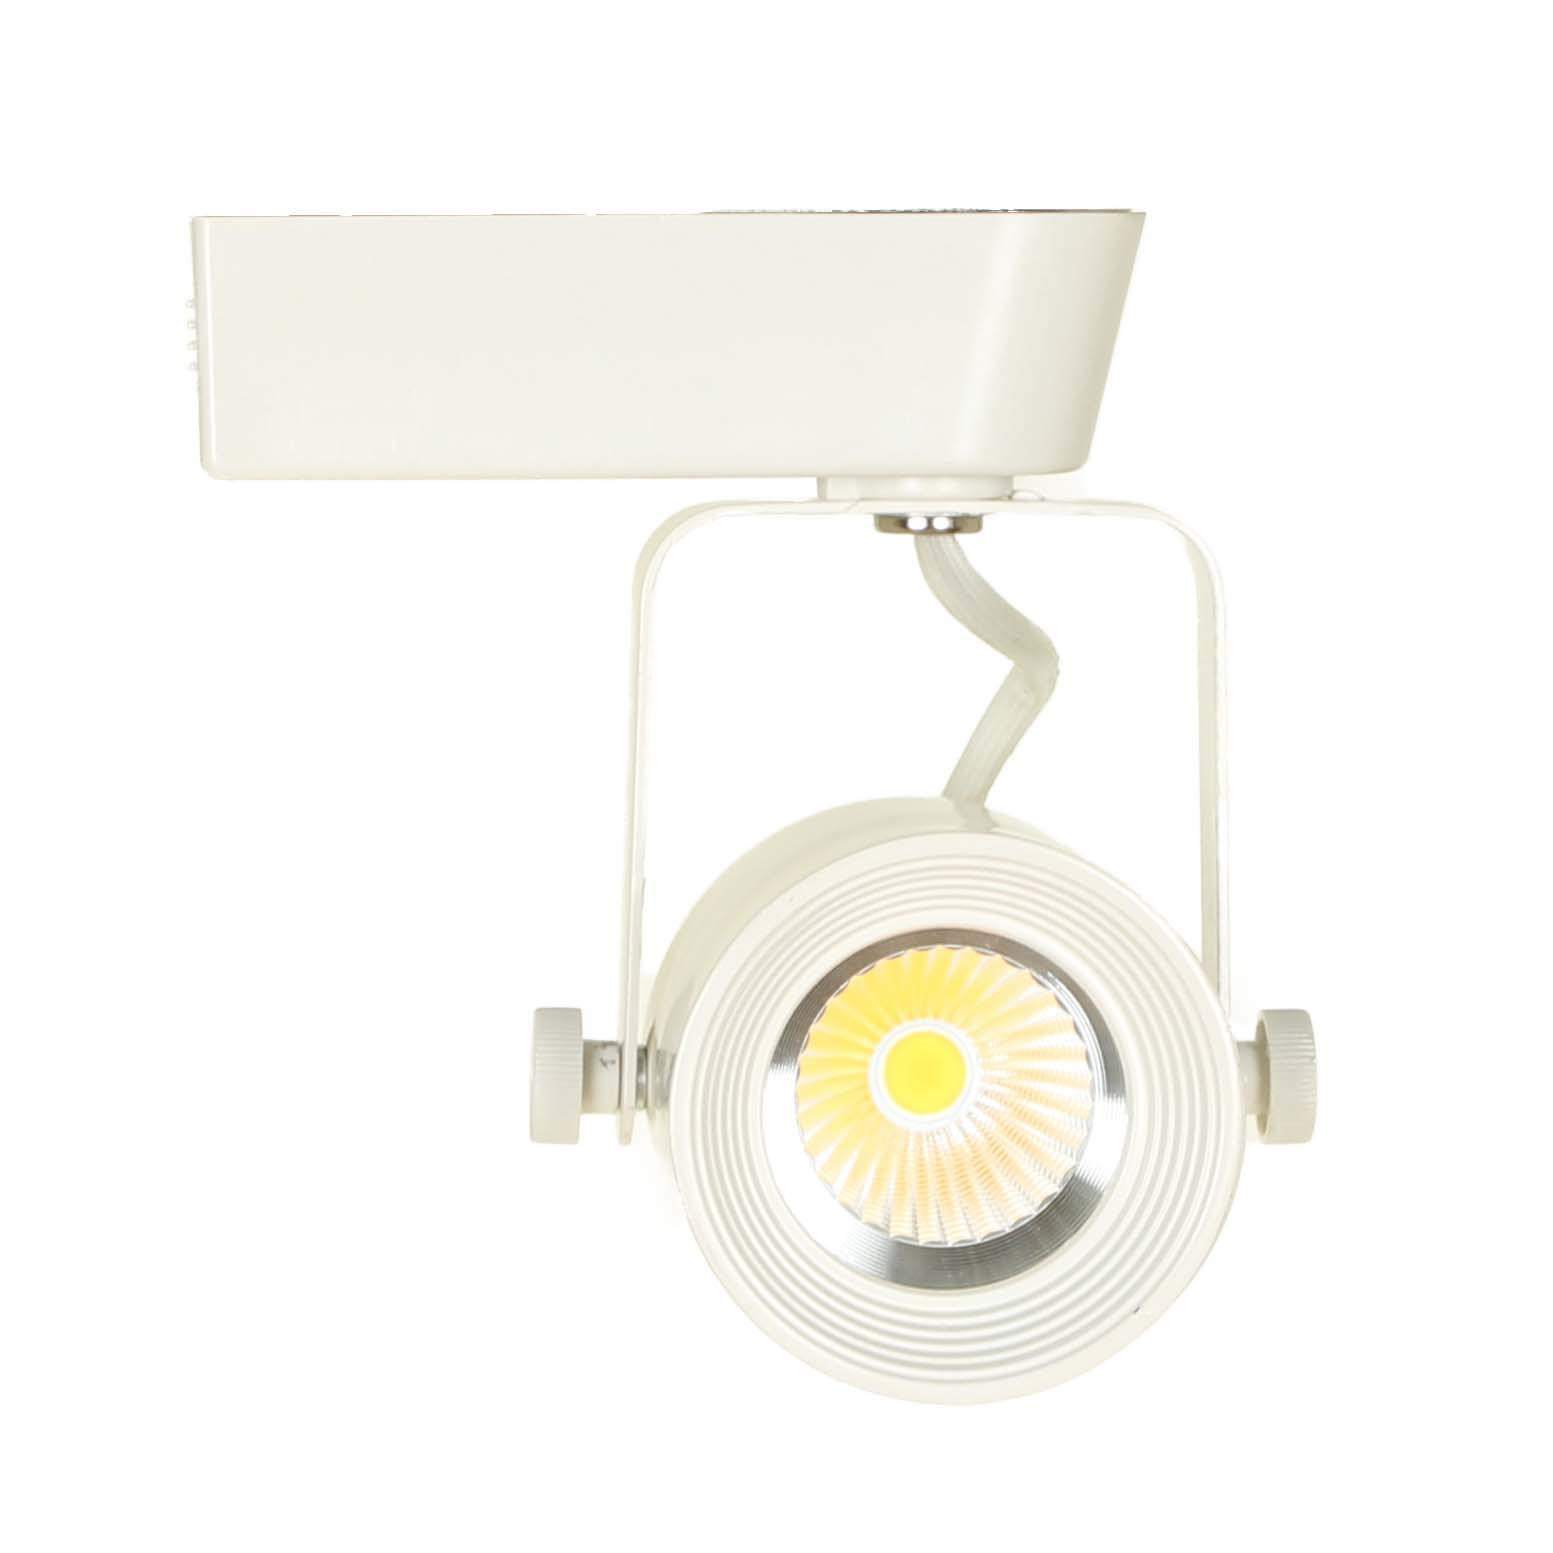 LED Track Lighting Kit HT-60088 White  sc 1 st  Direct-Lighting.com : white track lights - azcodes.com